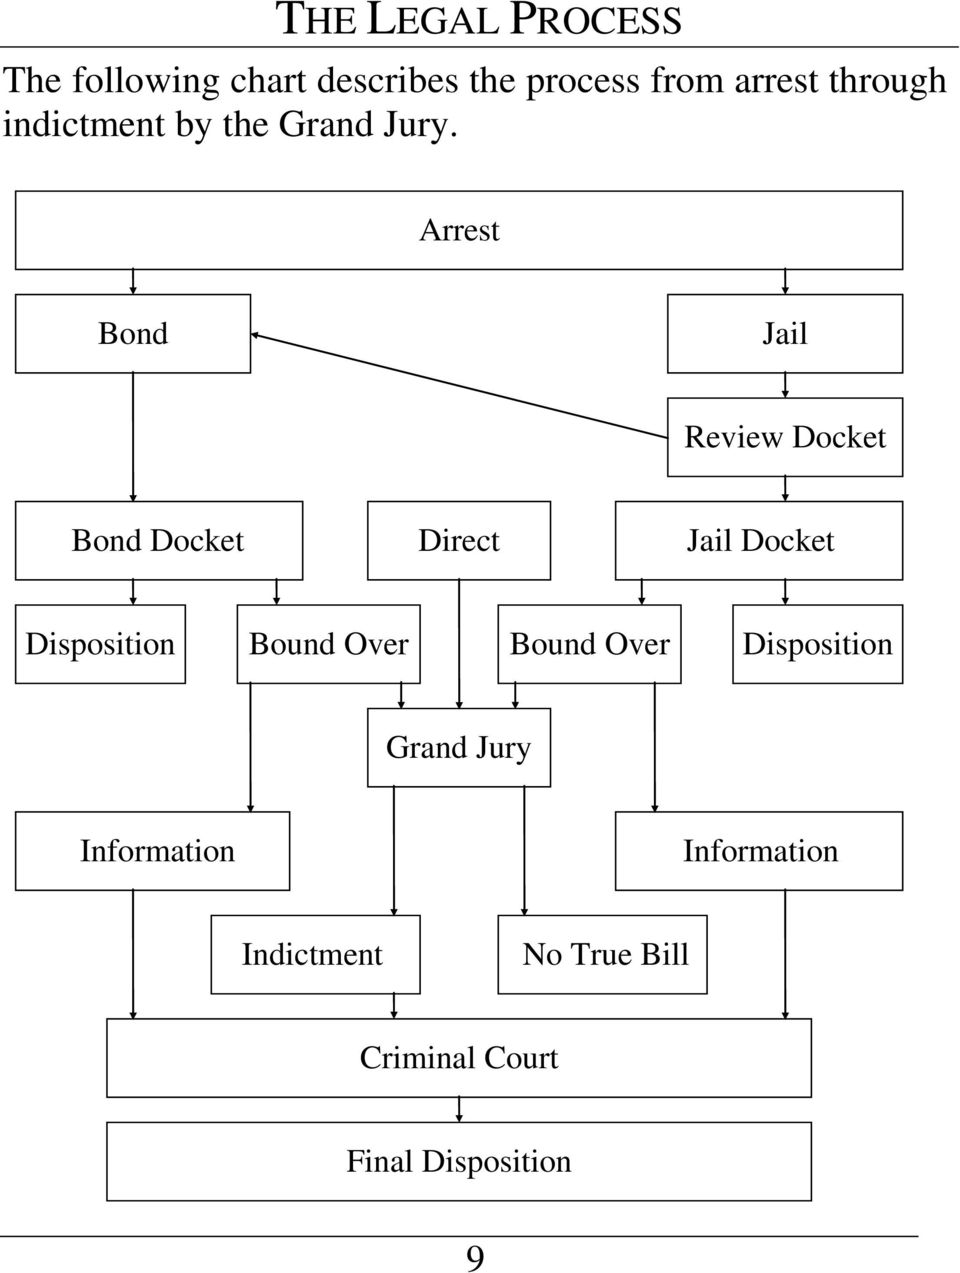 Arrest Bond Jail Review Docket Bond Docket Direct Jail Docket Disposition